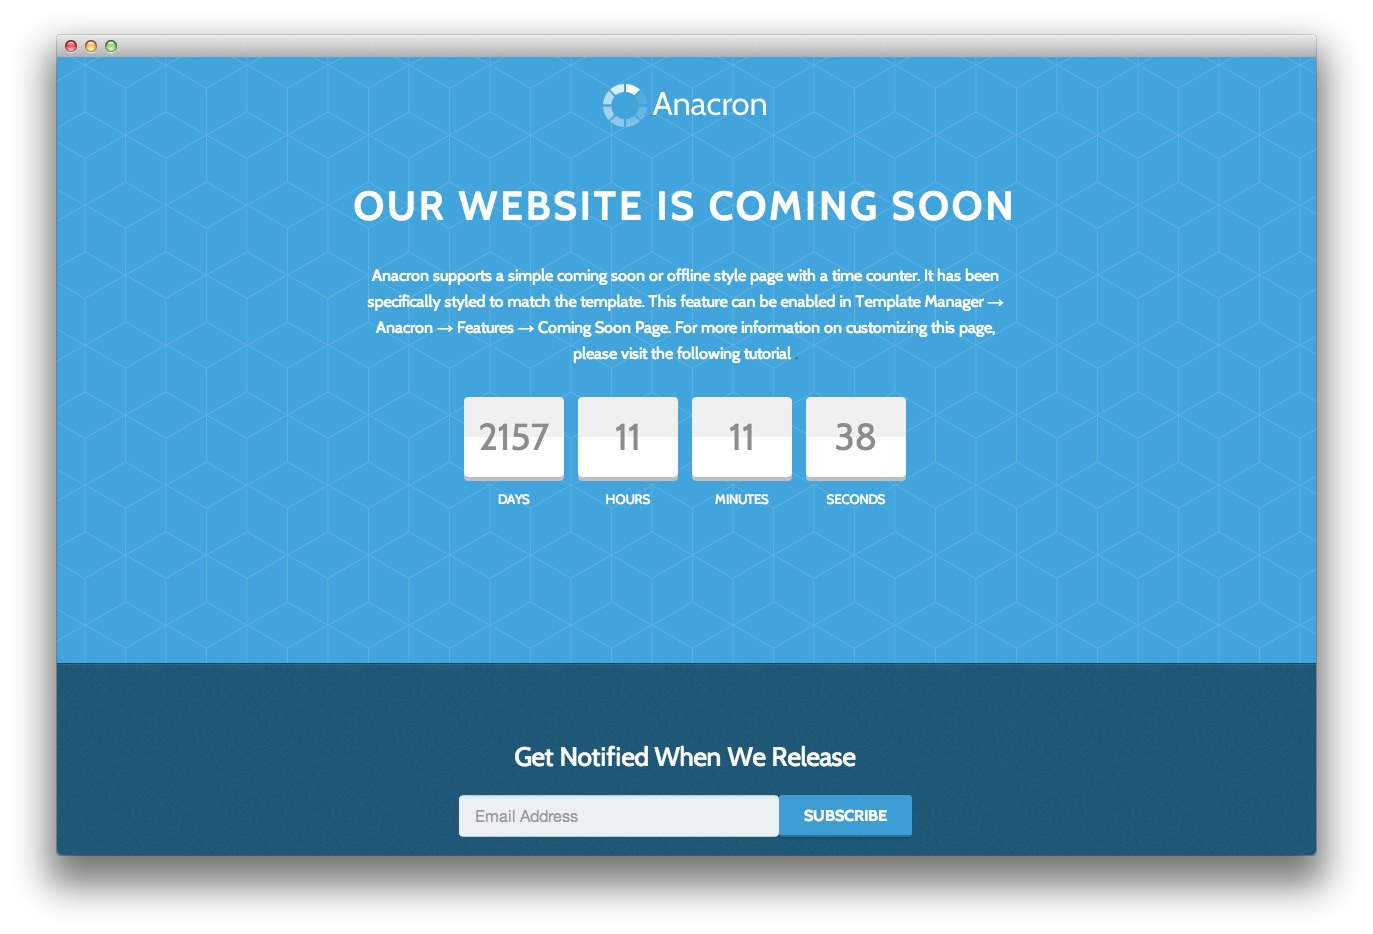 Anacron Introduces A Coming Soon Page